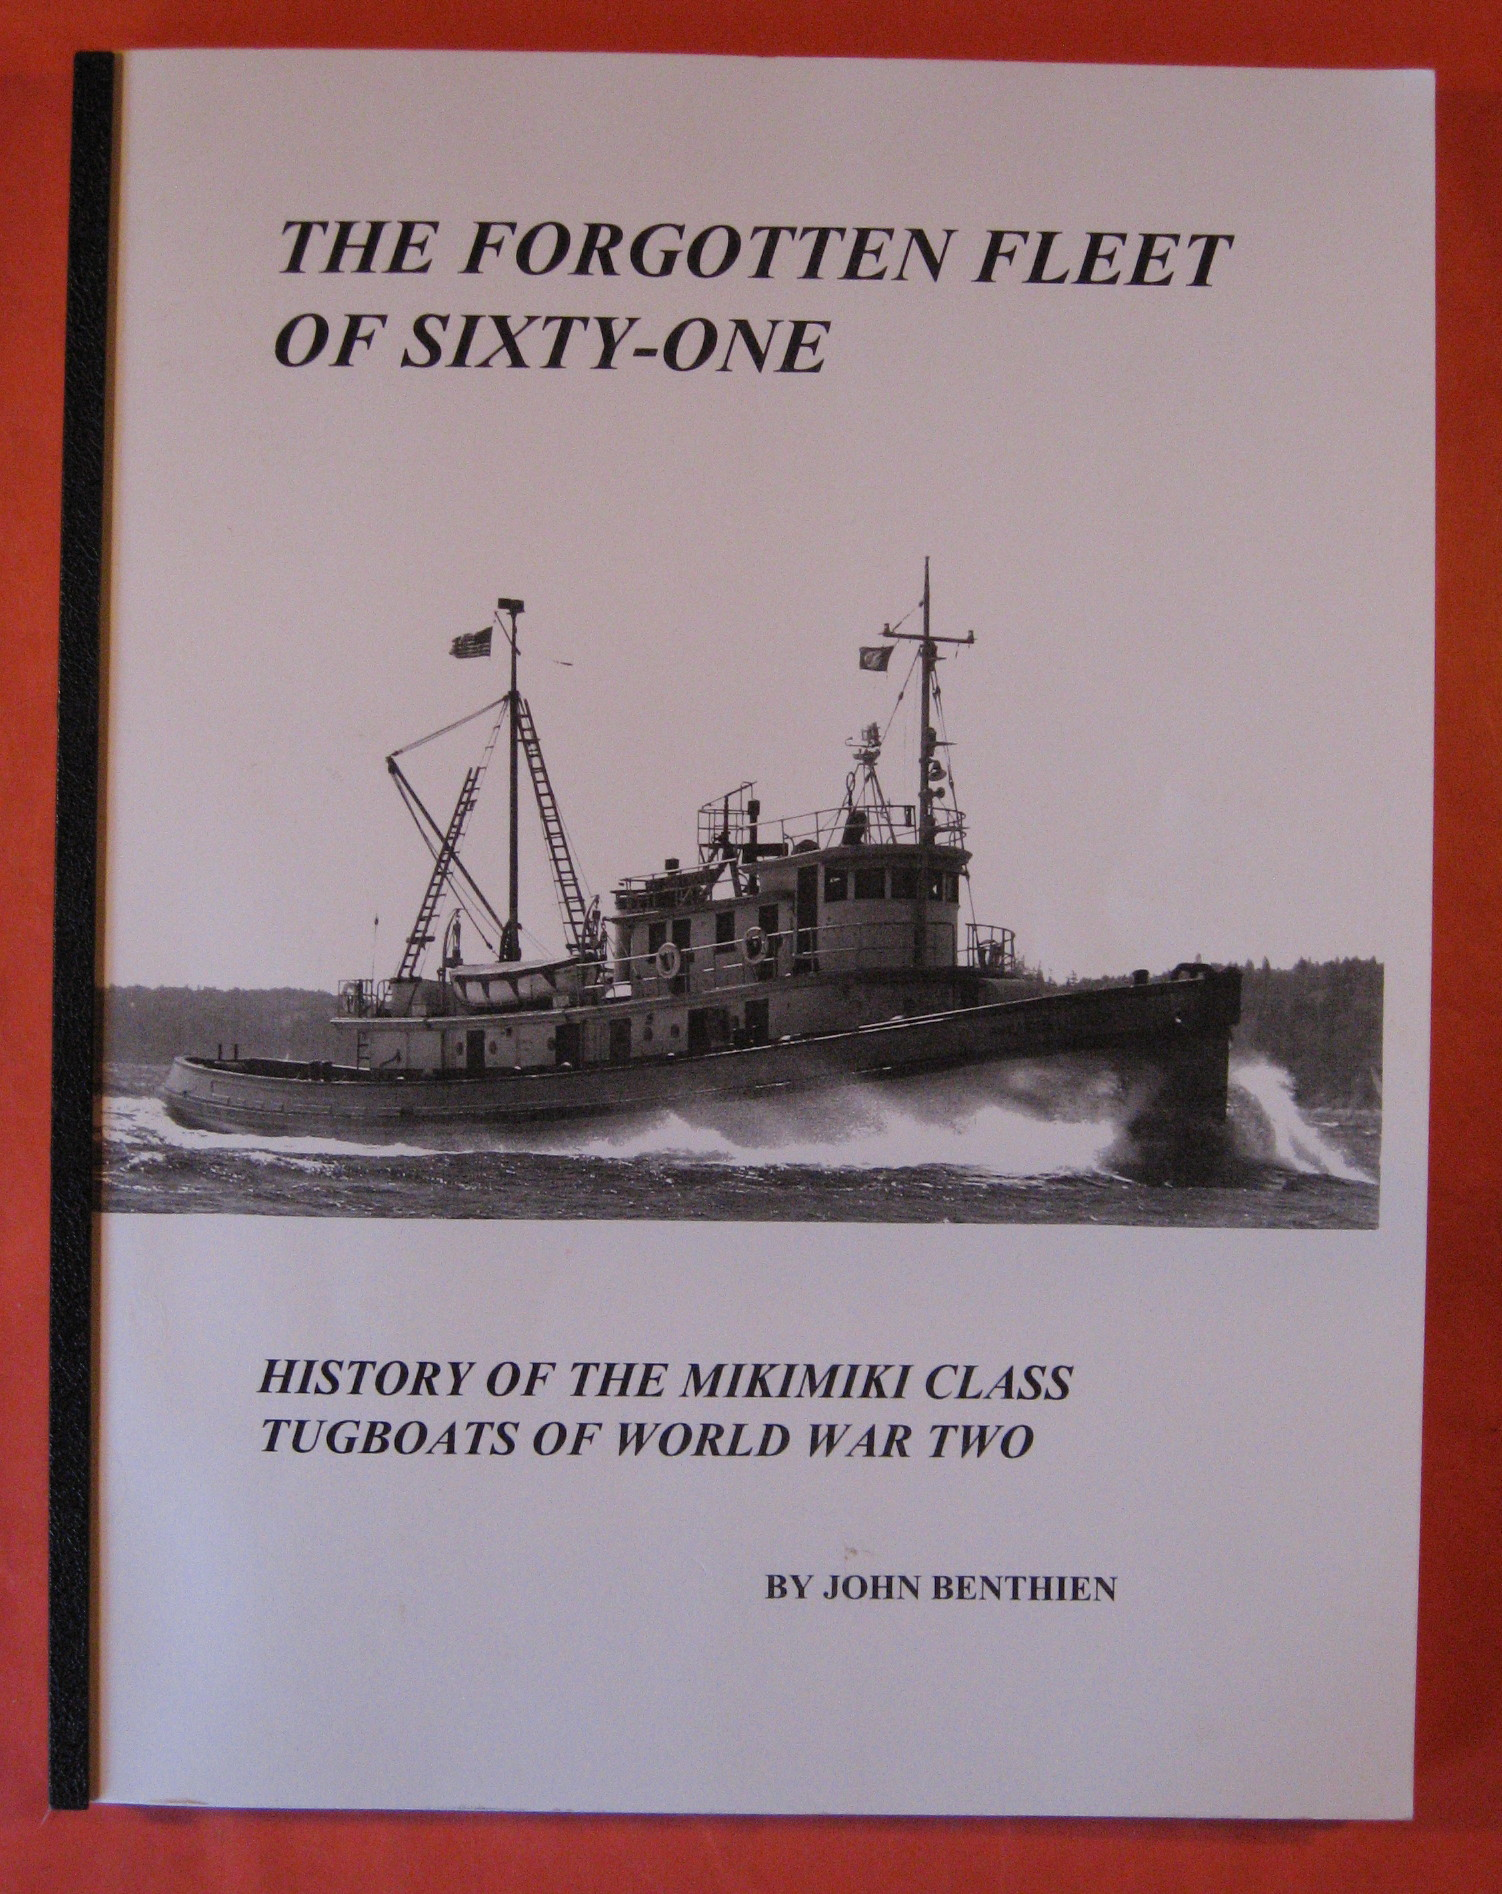 The Forgotten Fleet of Sixty-One:  History of the Mikimiki Class Tugboats of World War Two, Benthien, John R.